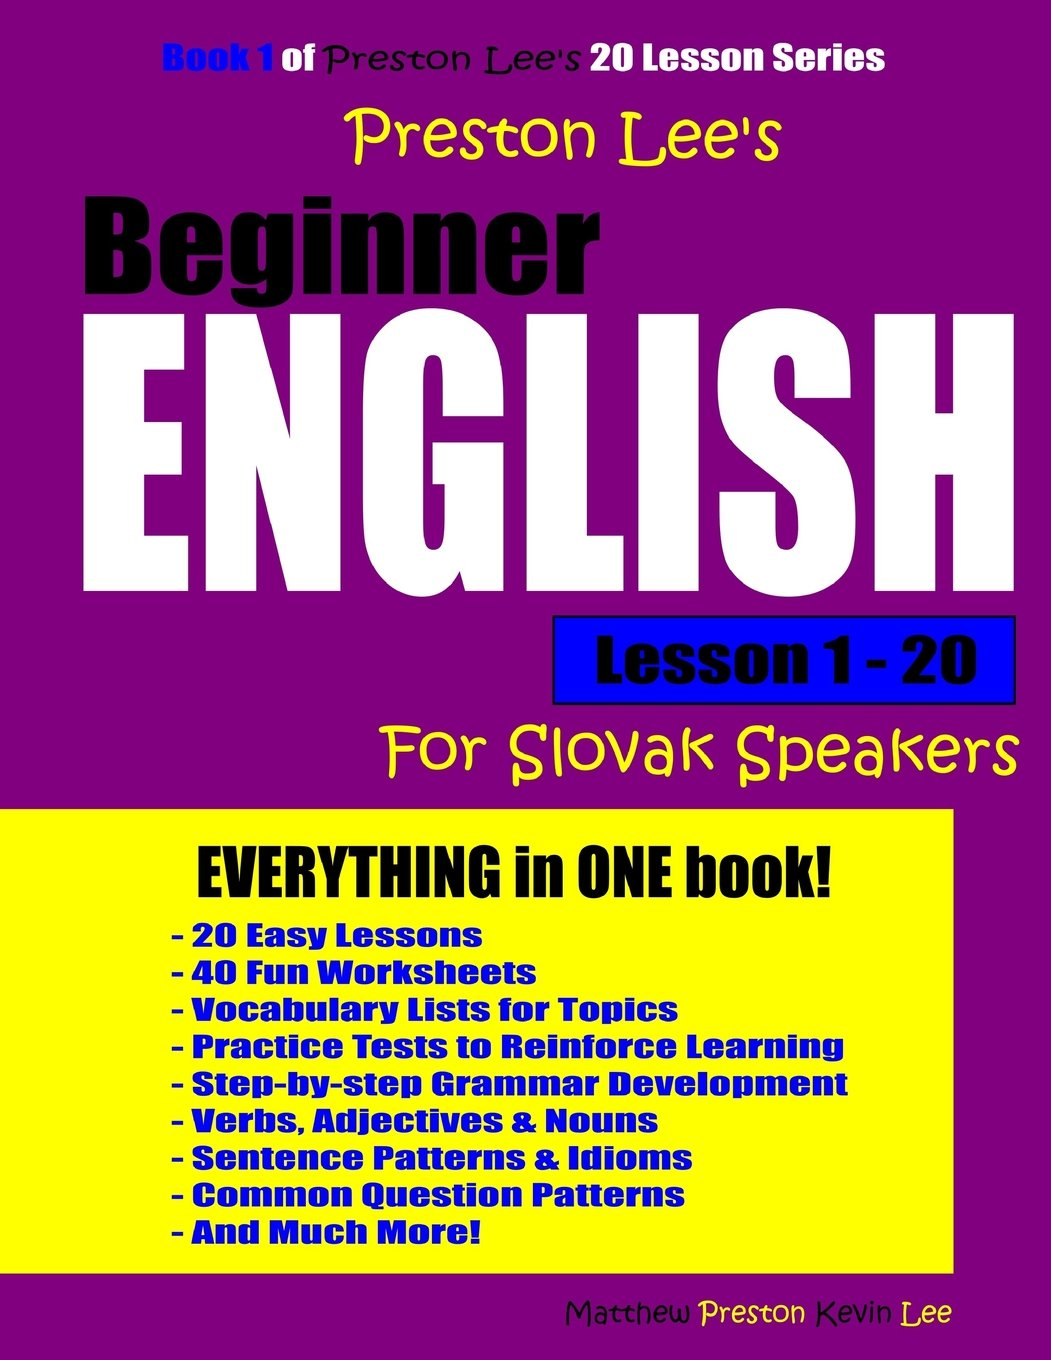 Download Preston Lee's Beginner English Lesson 1 - 20 For Slovak Speakers pdf